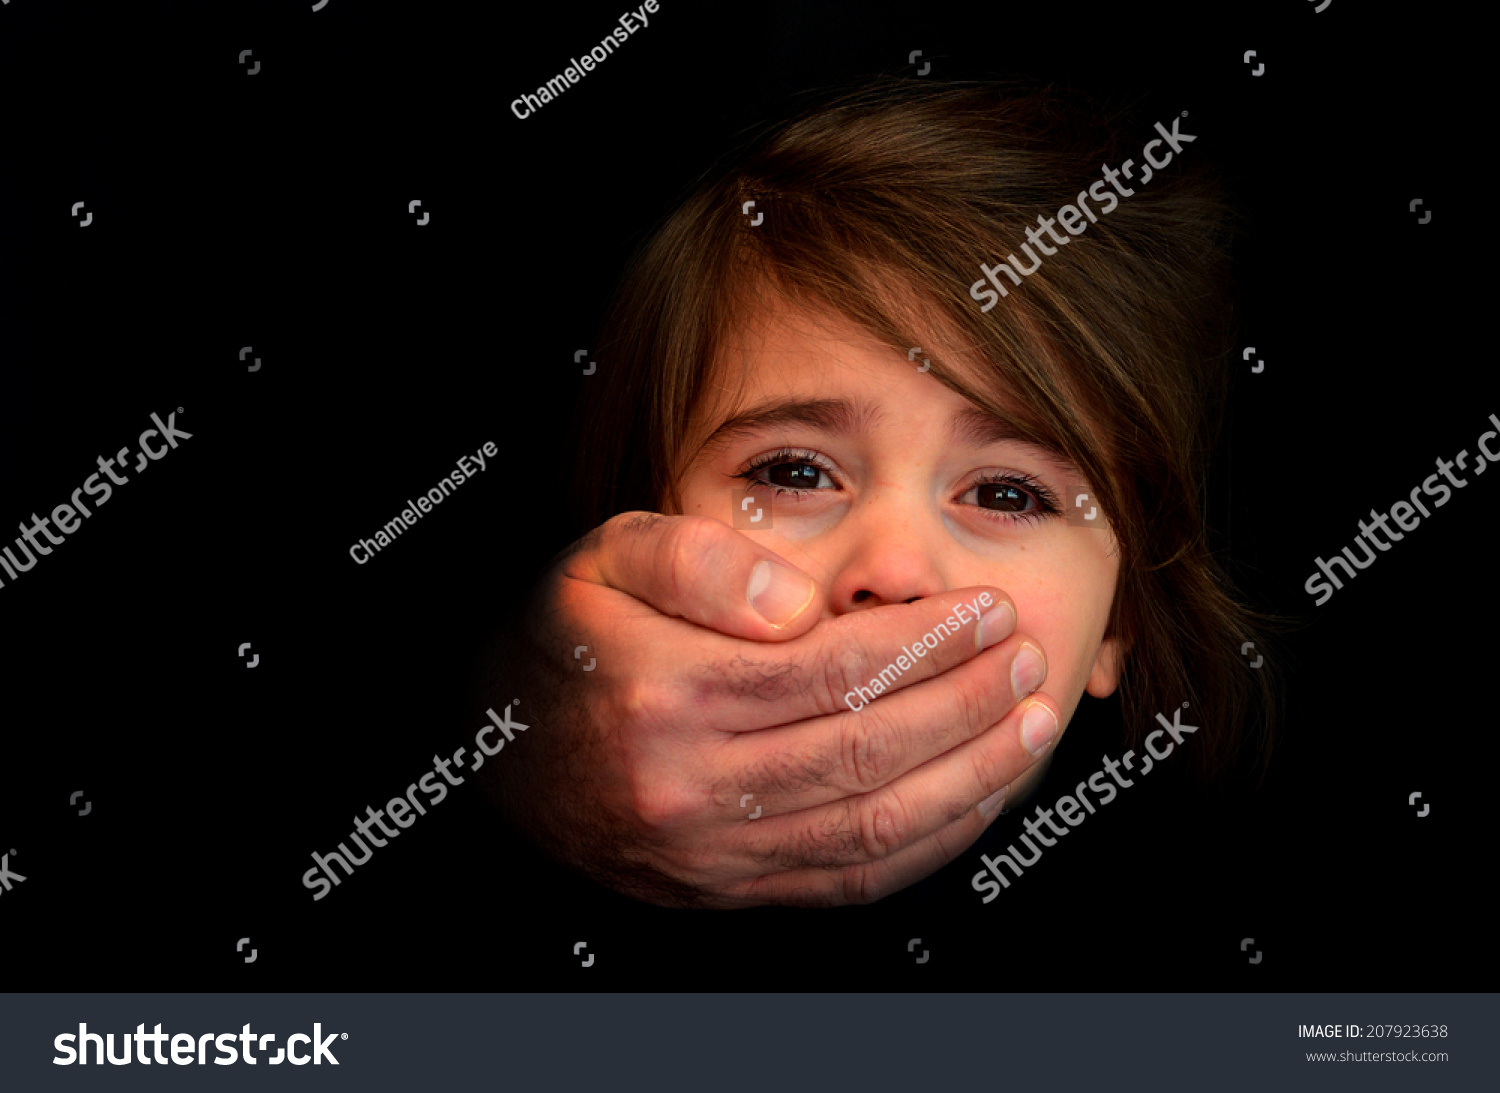 littlegirl tied up Strong male hands cover little girl face with emotional stress, pain, afraid, call